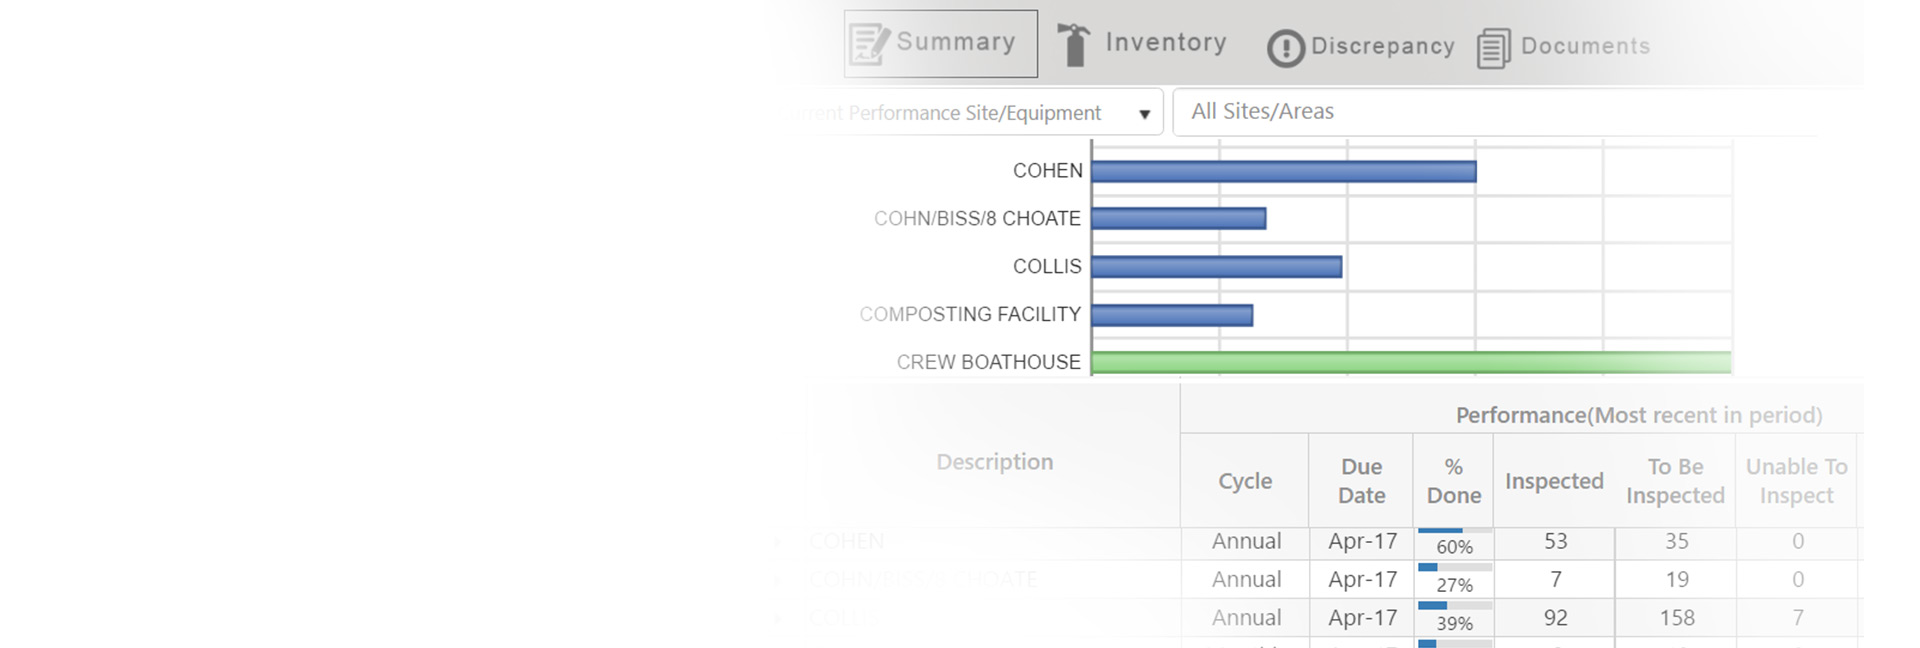 An example screenshot of the LSI Dashboard